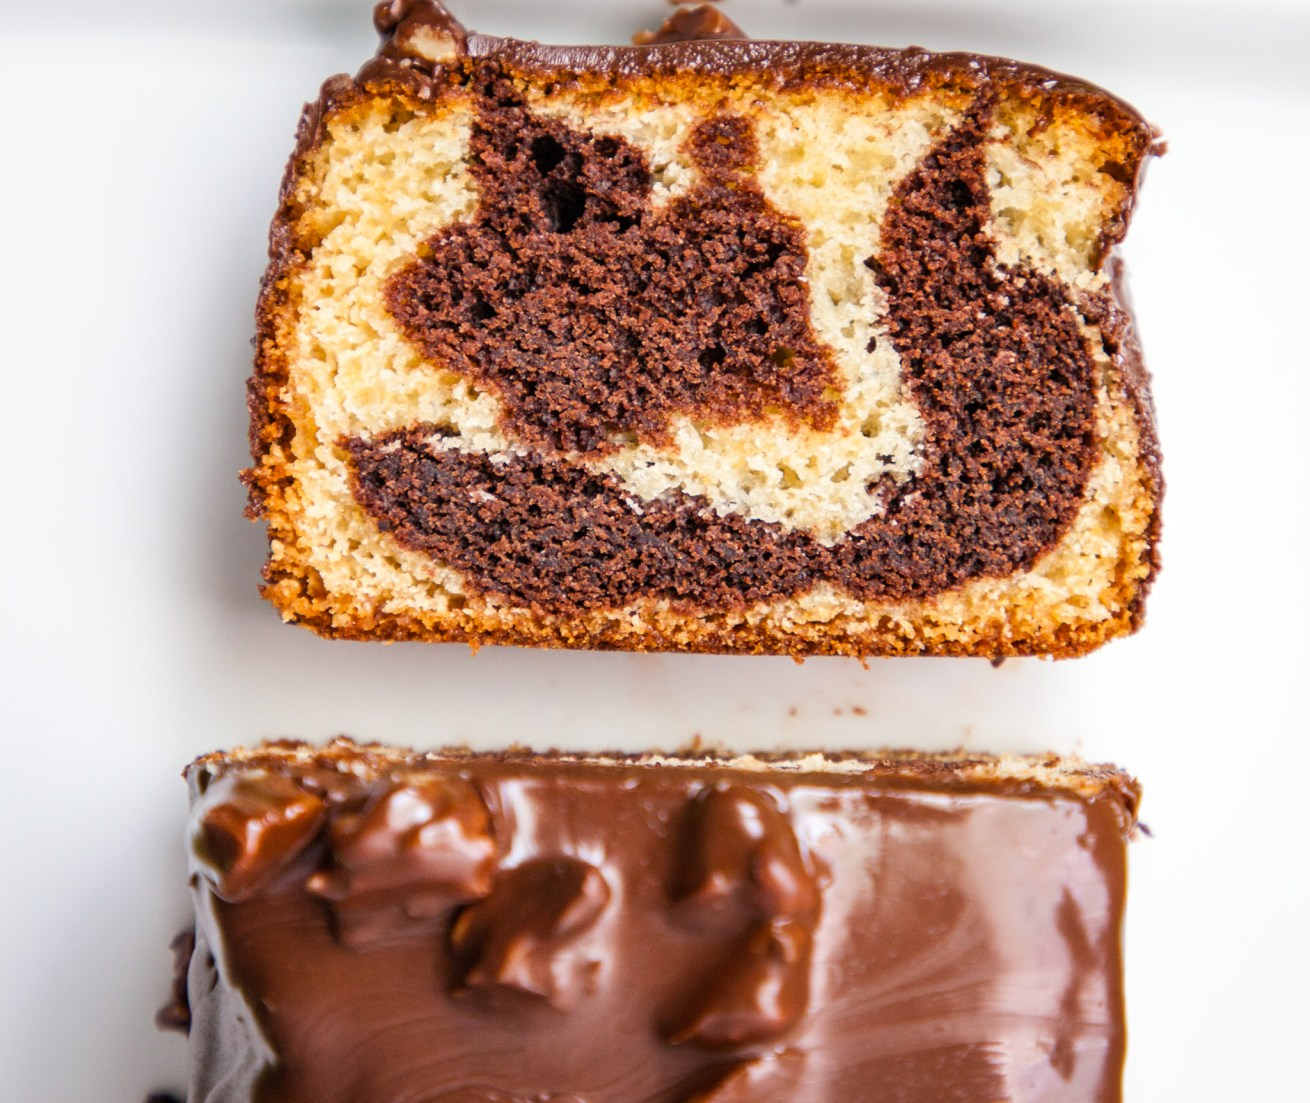 Moist Marble Cake with Walnuts